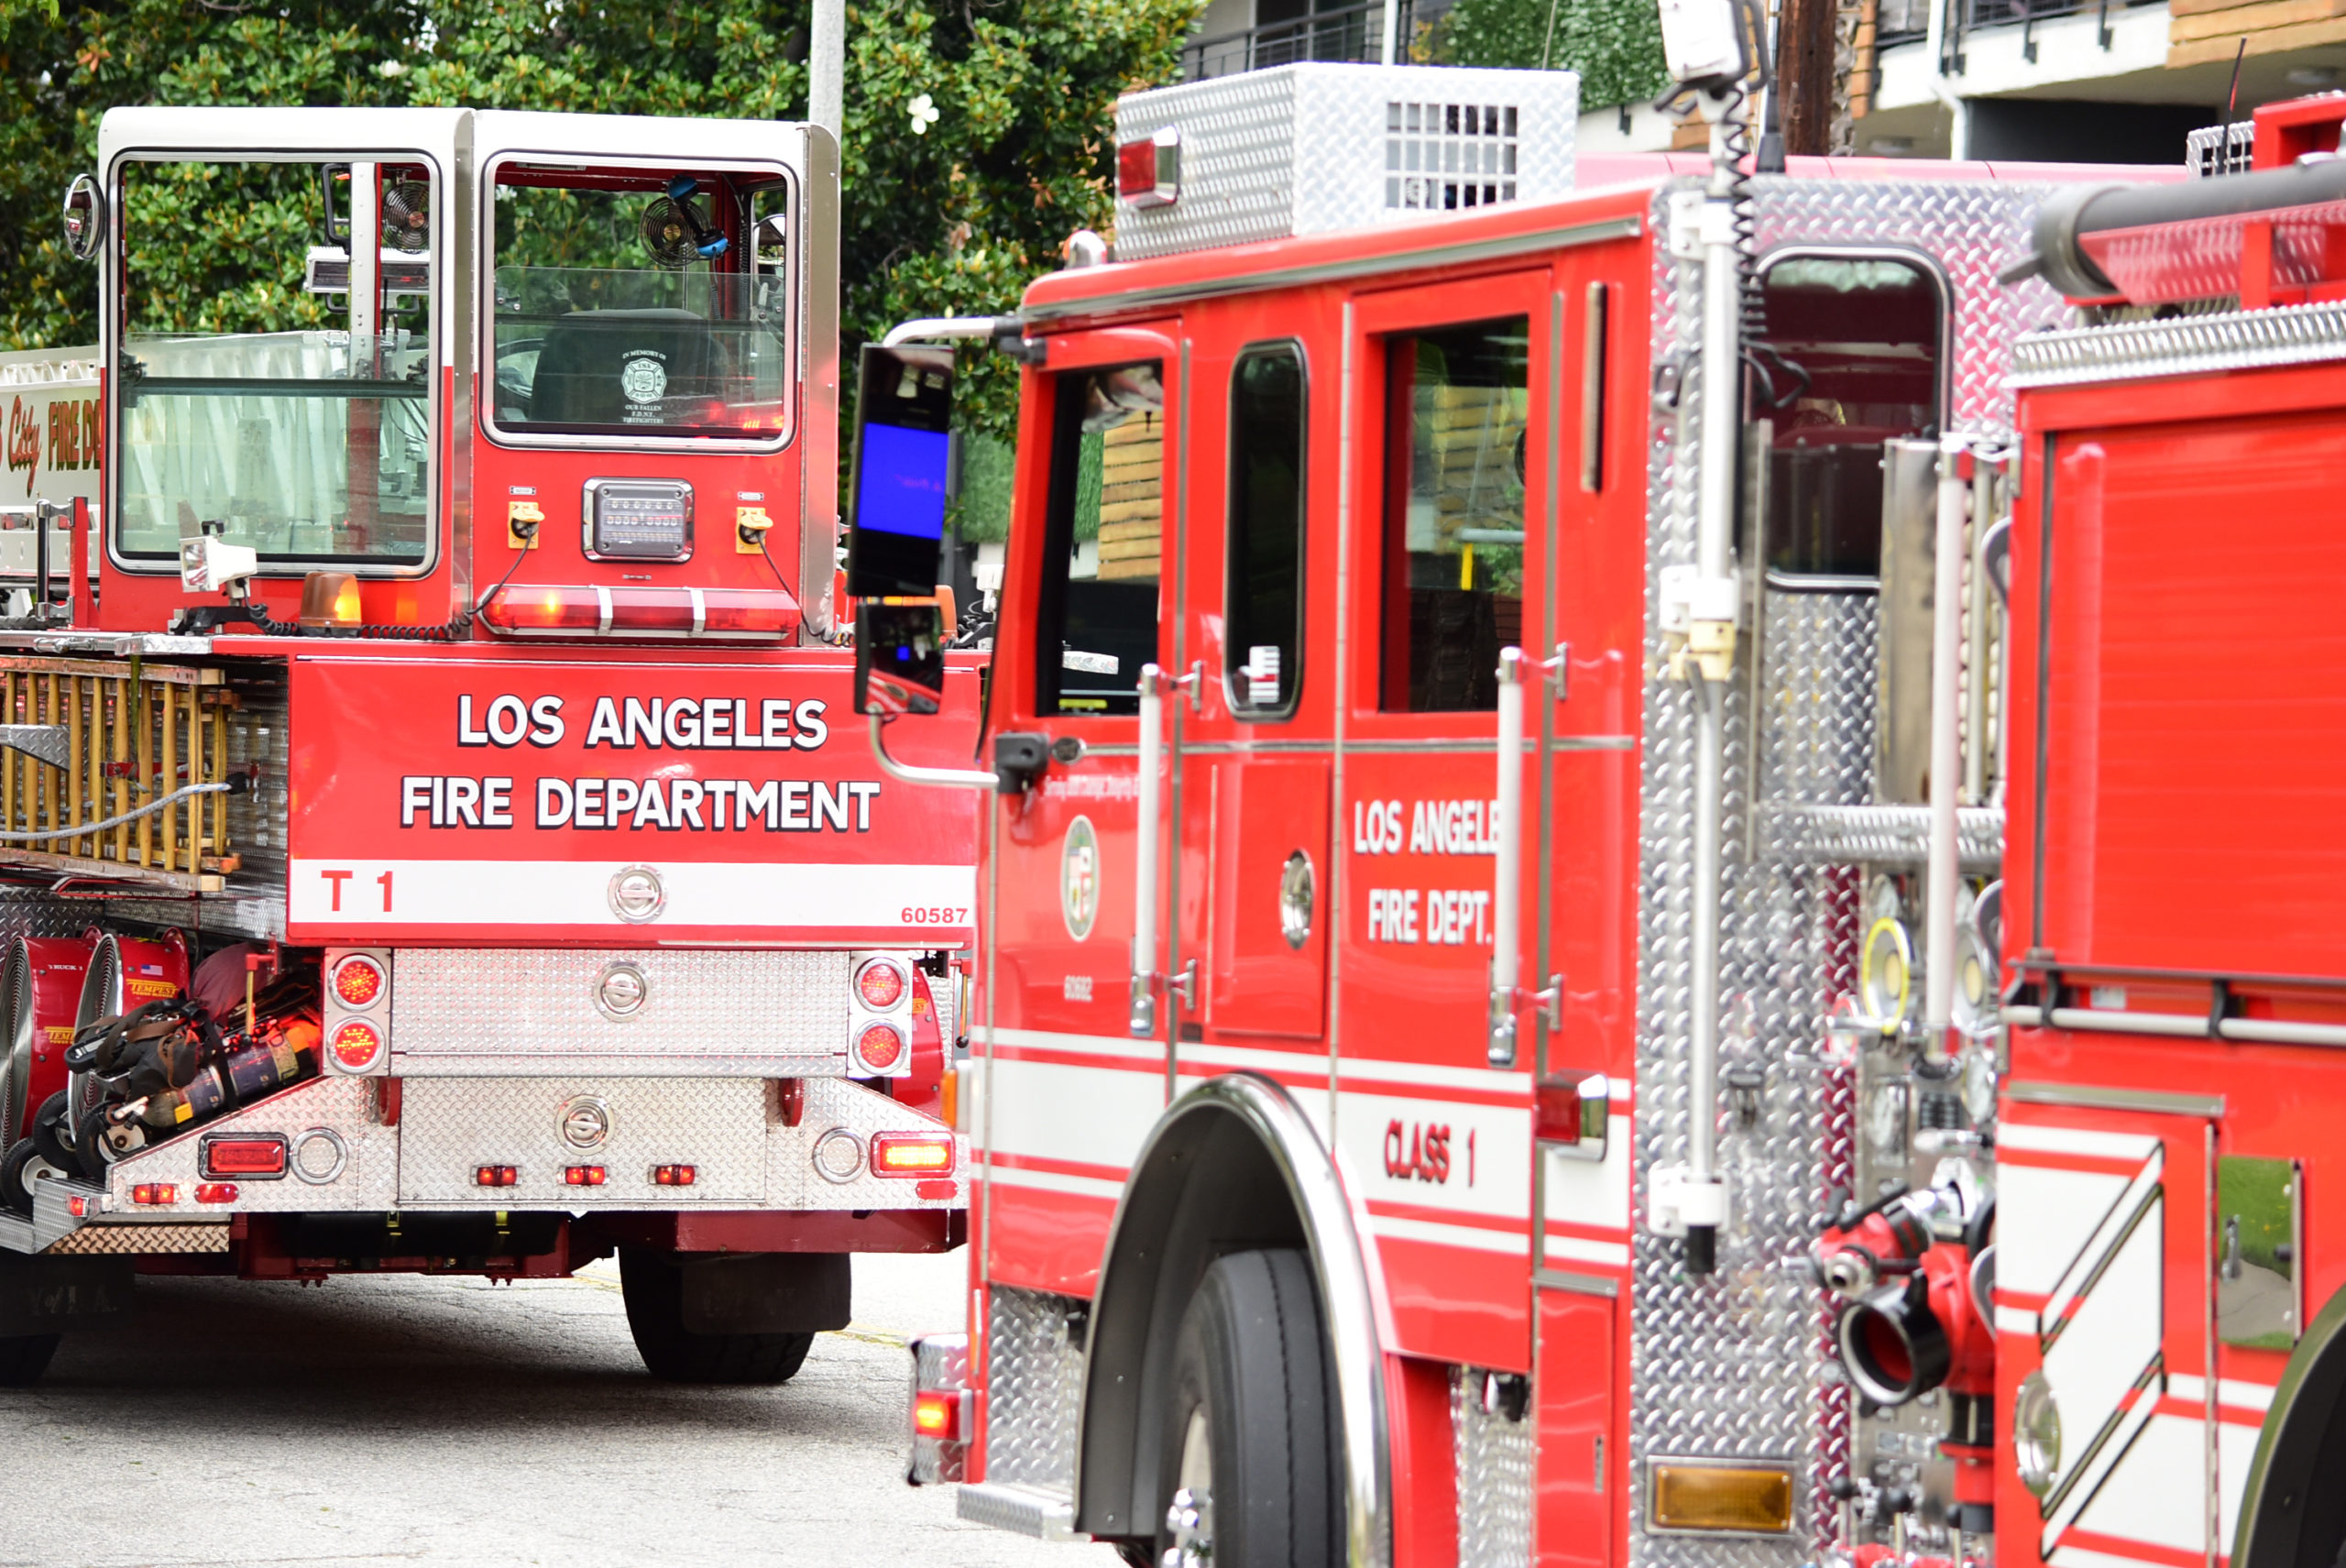 south-pasadena-news-06-05-2020-spfd-house-fire-monterey-road-los-angeles-05